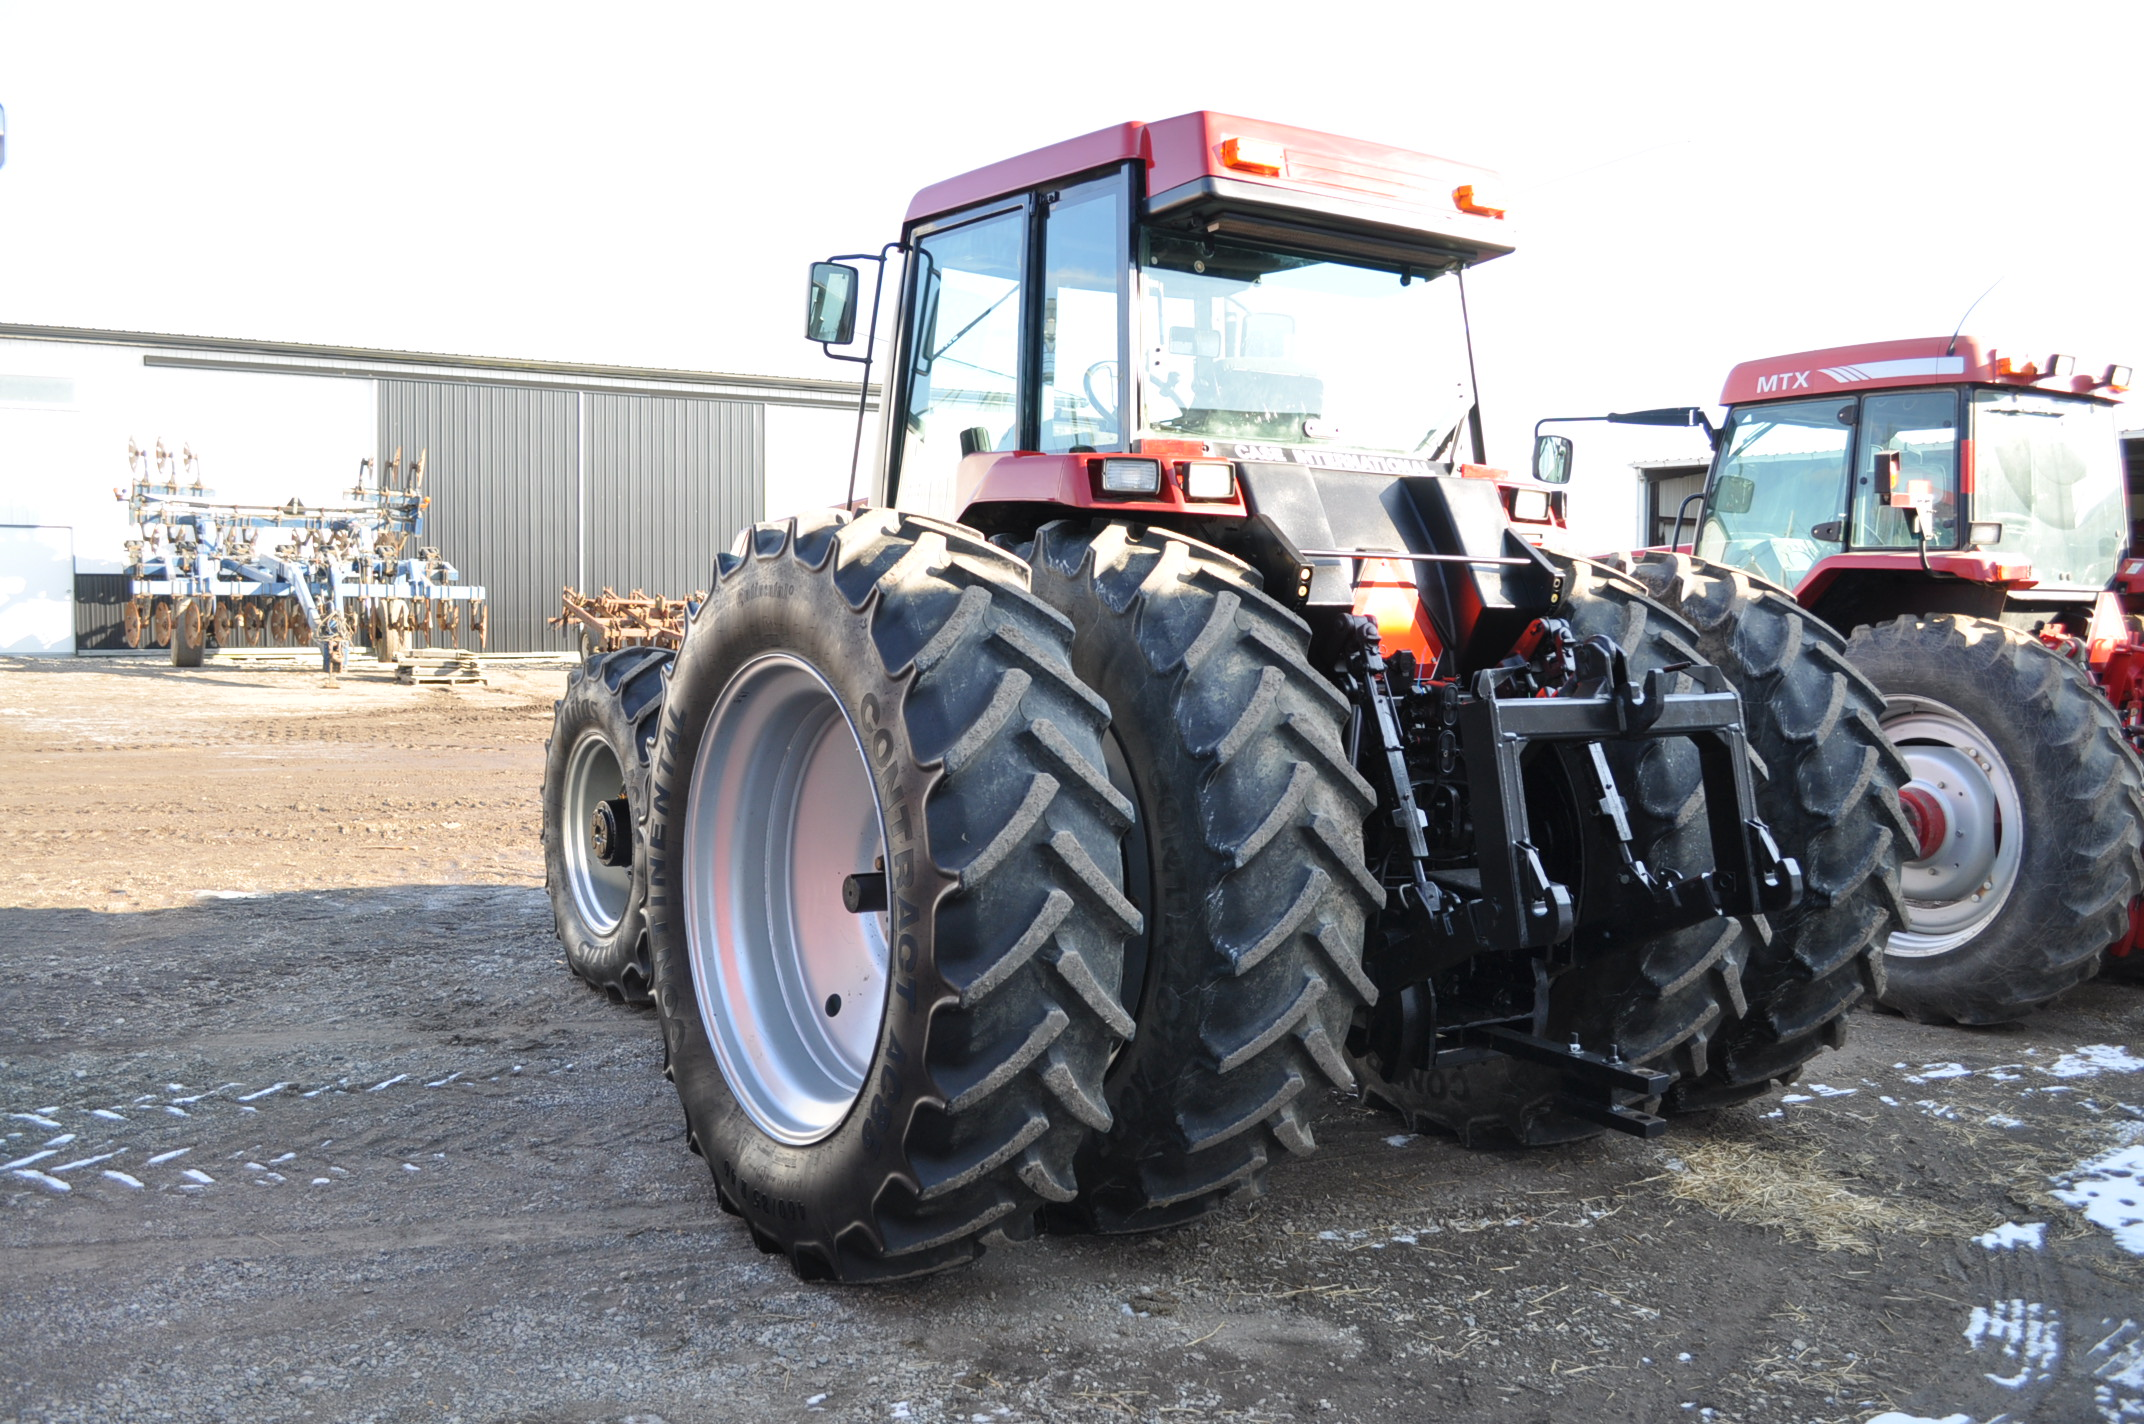 Case IH 7240 MFWD tractor, 460/85R46 rear duals, 420/85R30 front, 18 spd powershift, 4 reverse, - Image 3 of 20